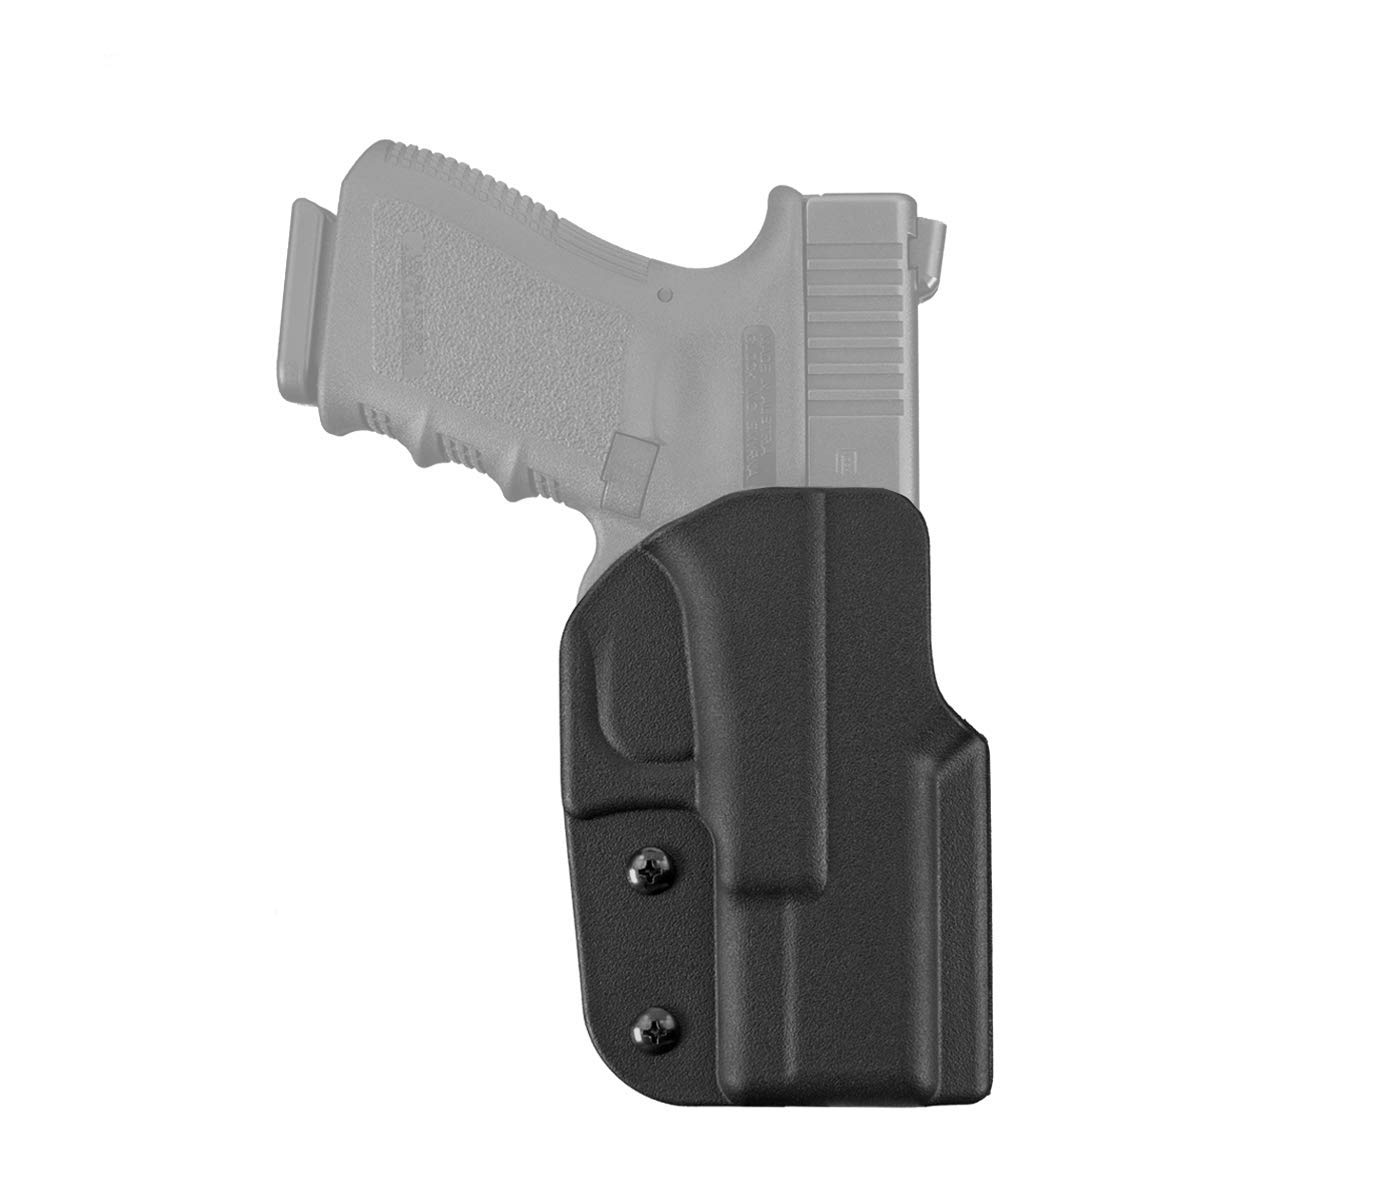 Blade-Tech Signature Holster - OWB Holster for 1911, Glock, H&K, Sig, Springfield, S&W and STI